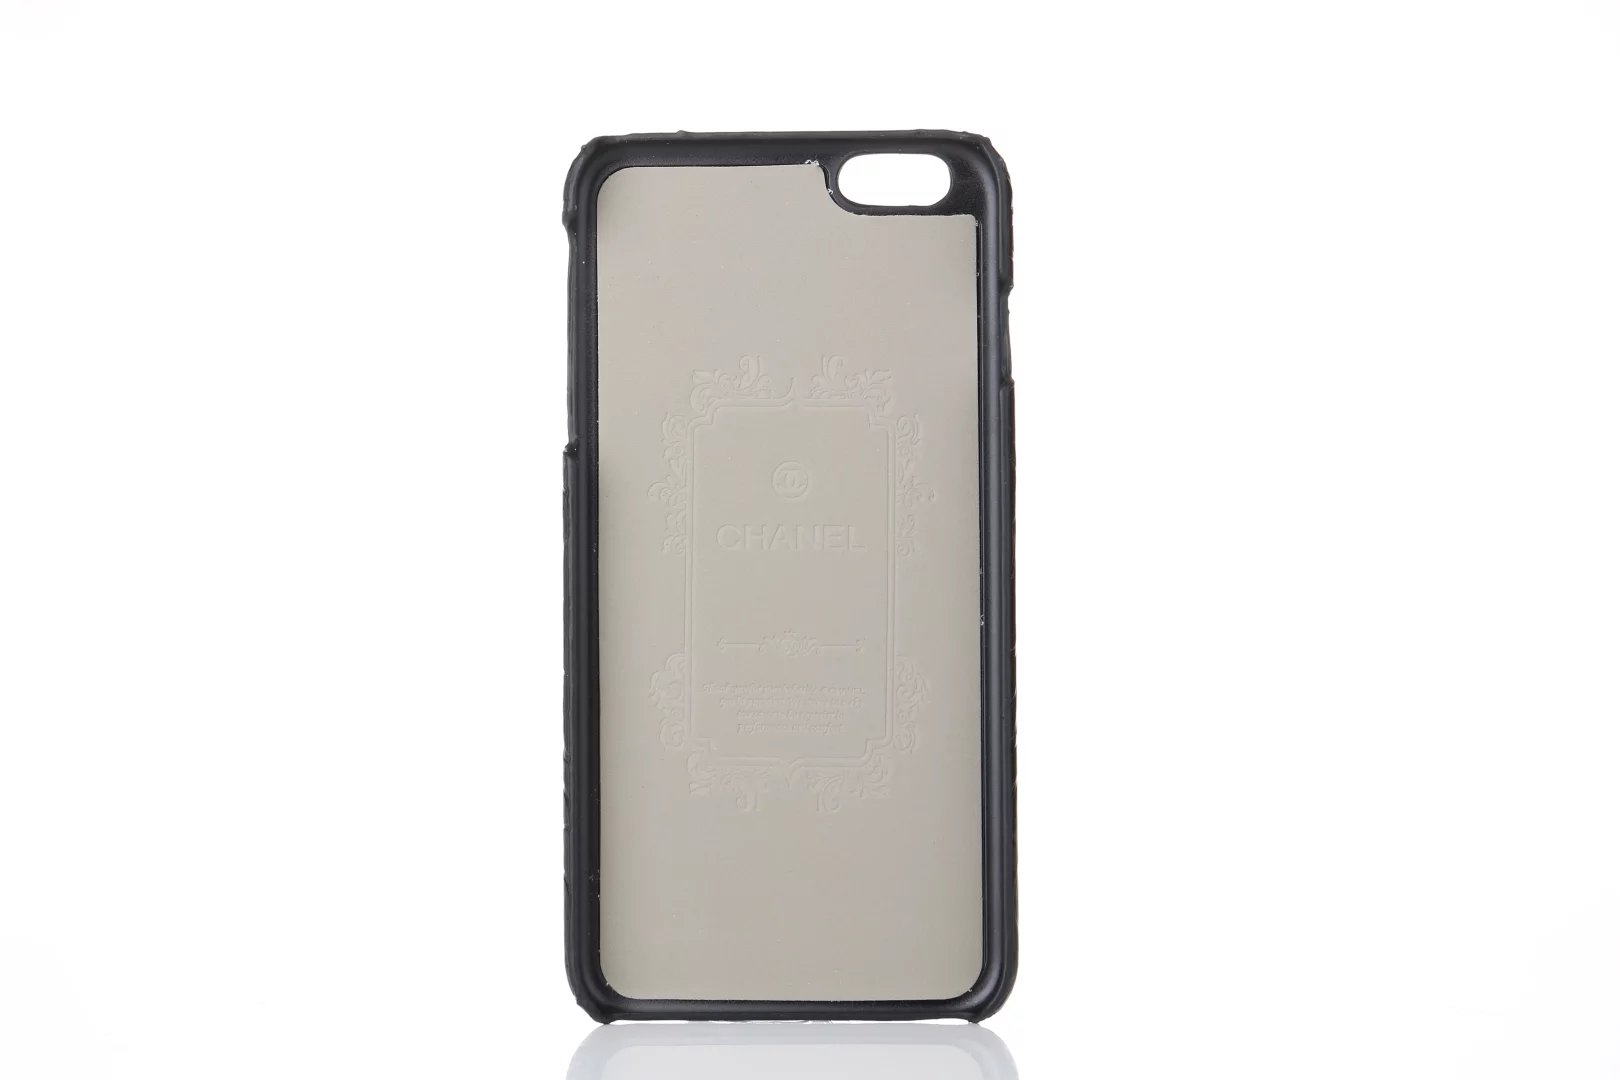 iphone 8 cases with front cover iphone 8 cases for sale Chanel iphone 8 case cheap cell phone covers and cases iphone 8 battery case mophie mophie iphone case battery case for iphone 8 personalized phone covers iphone 8 branded cases